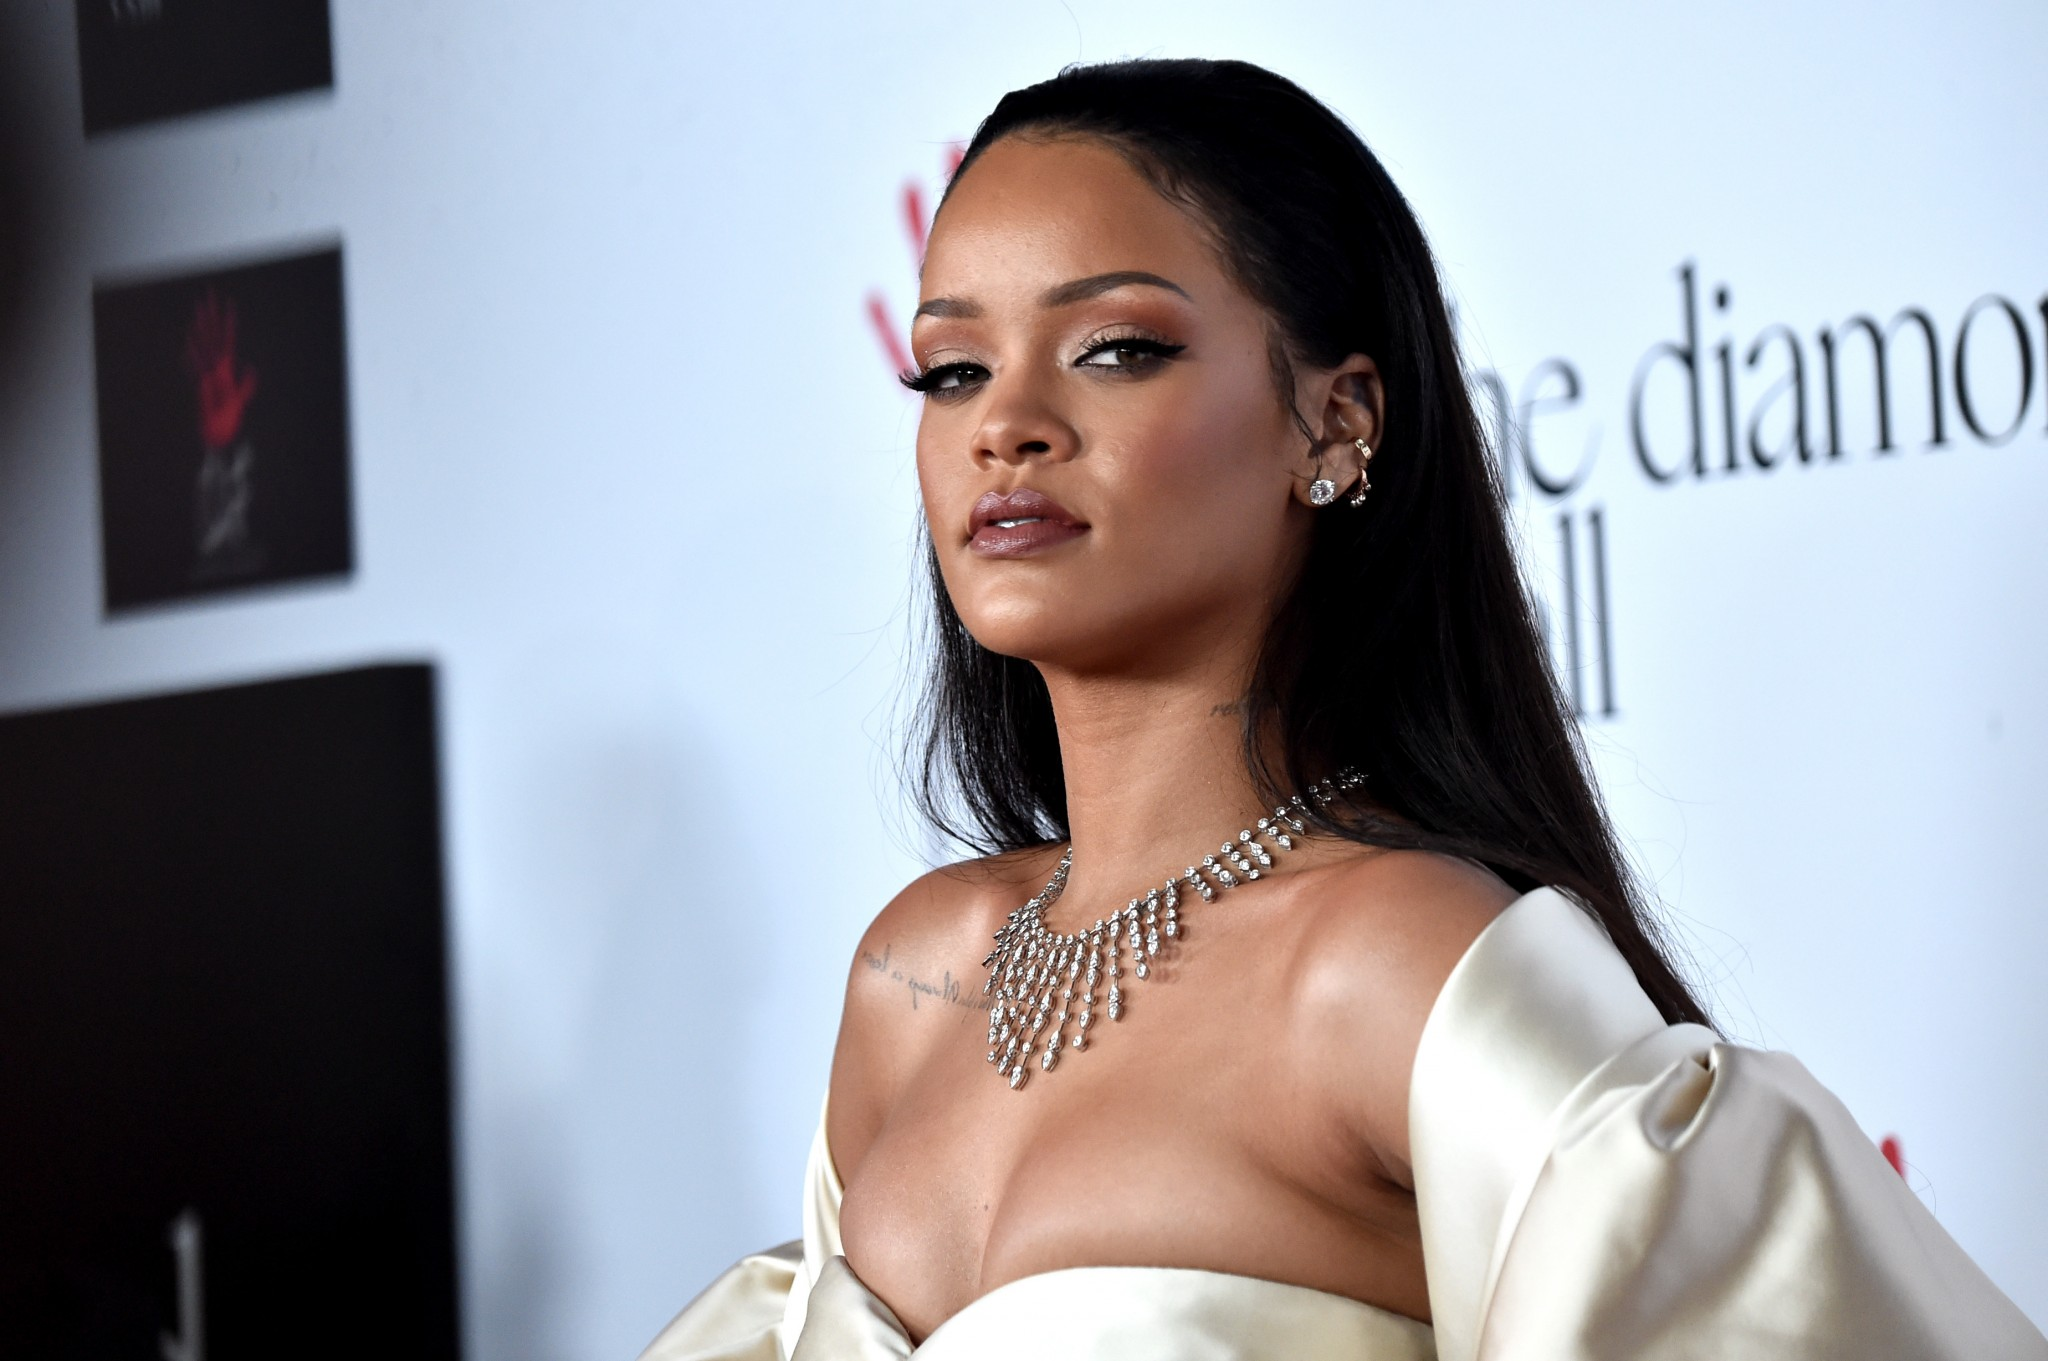 SANTA MONICA, CA - DECEMBER 10:  Recording artist Rihanna attends the second Annual Diamond Ball hosted by Rihanna plus the Clara Lionel Foundation at Barker Hanger on December 10, 2015 in Santa Monica, Ca.  (picture by Alberto E. Rodriguez/Getty graphics)